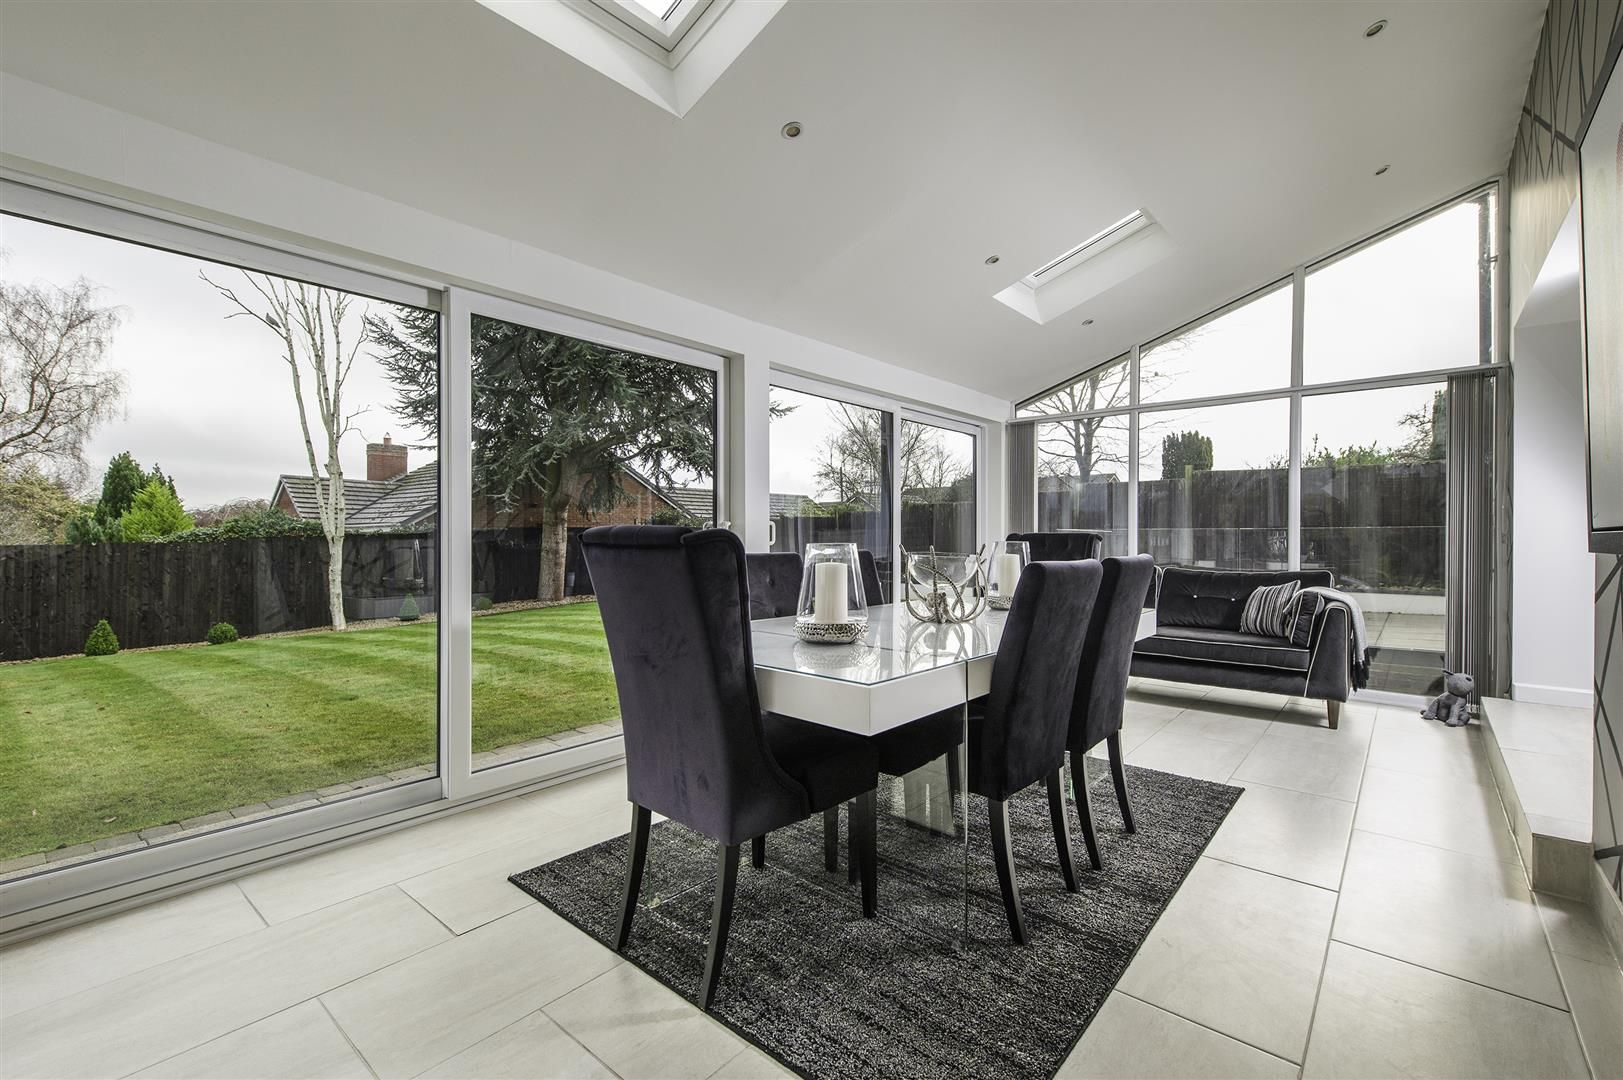 4 bed detached for sale in Stourton 10